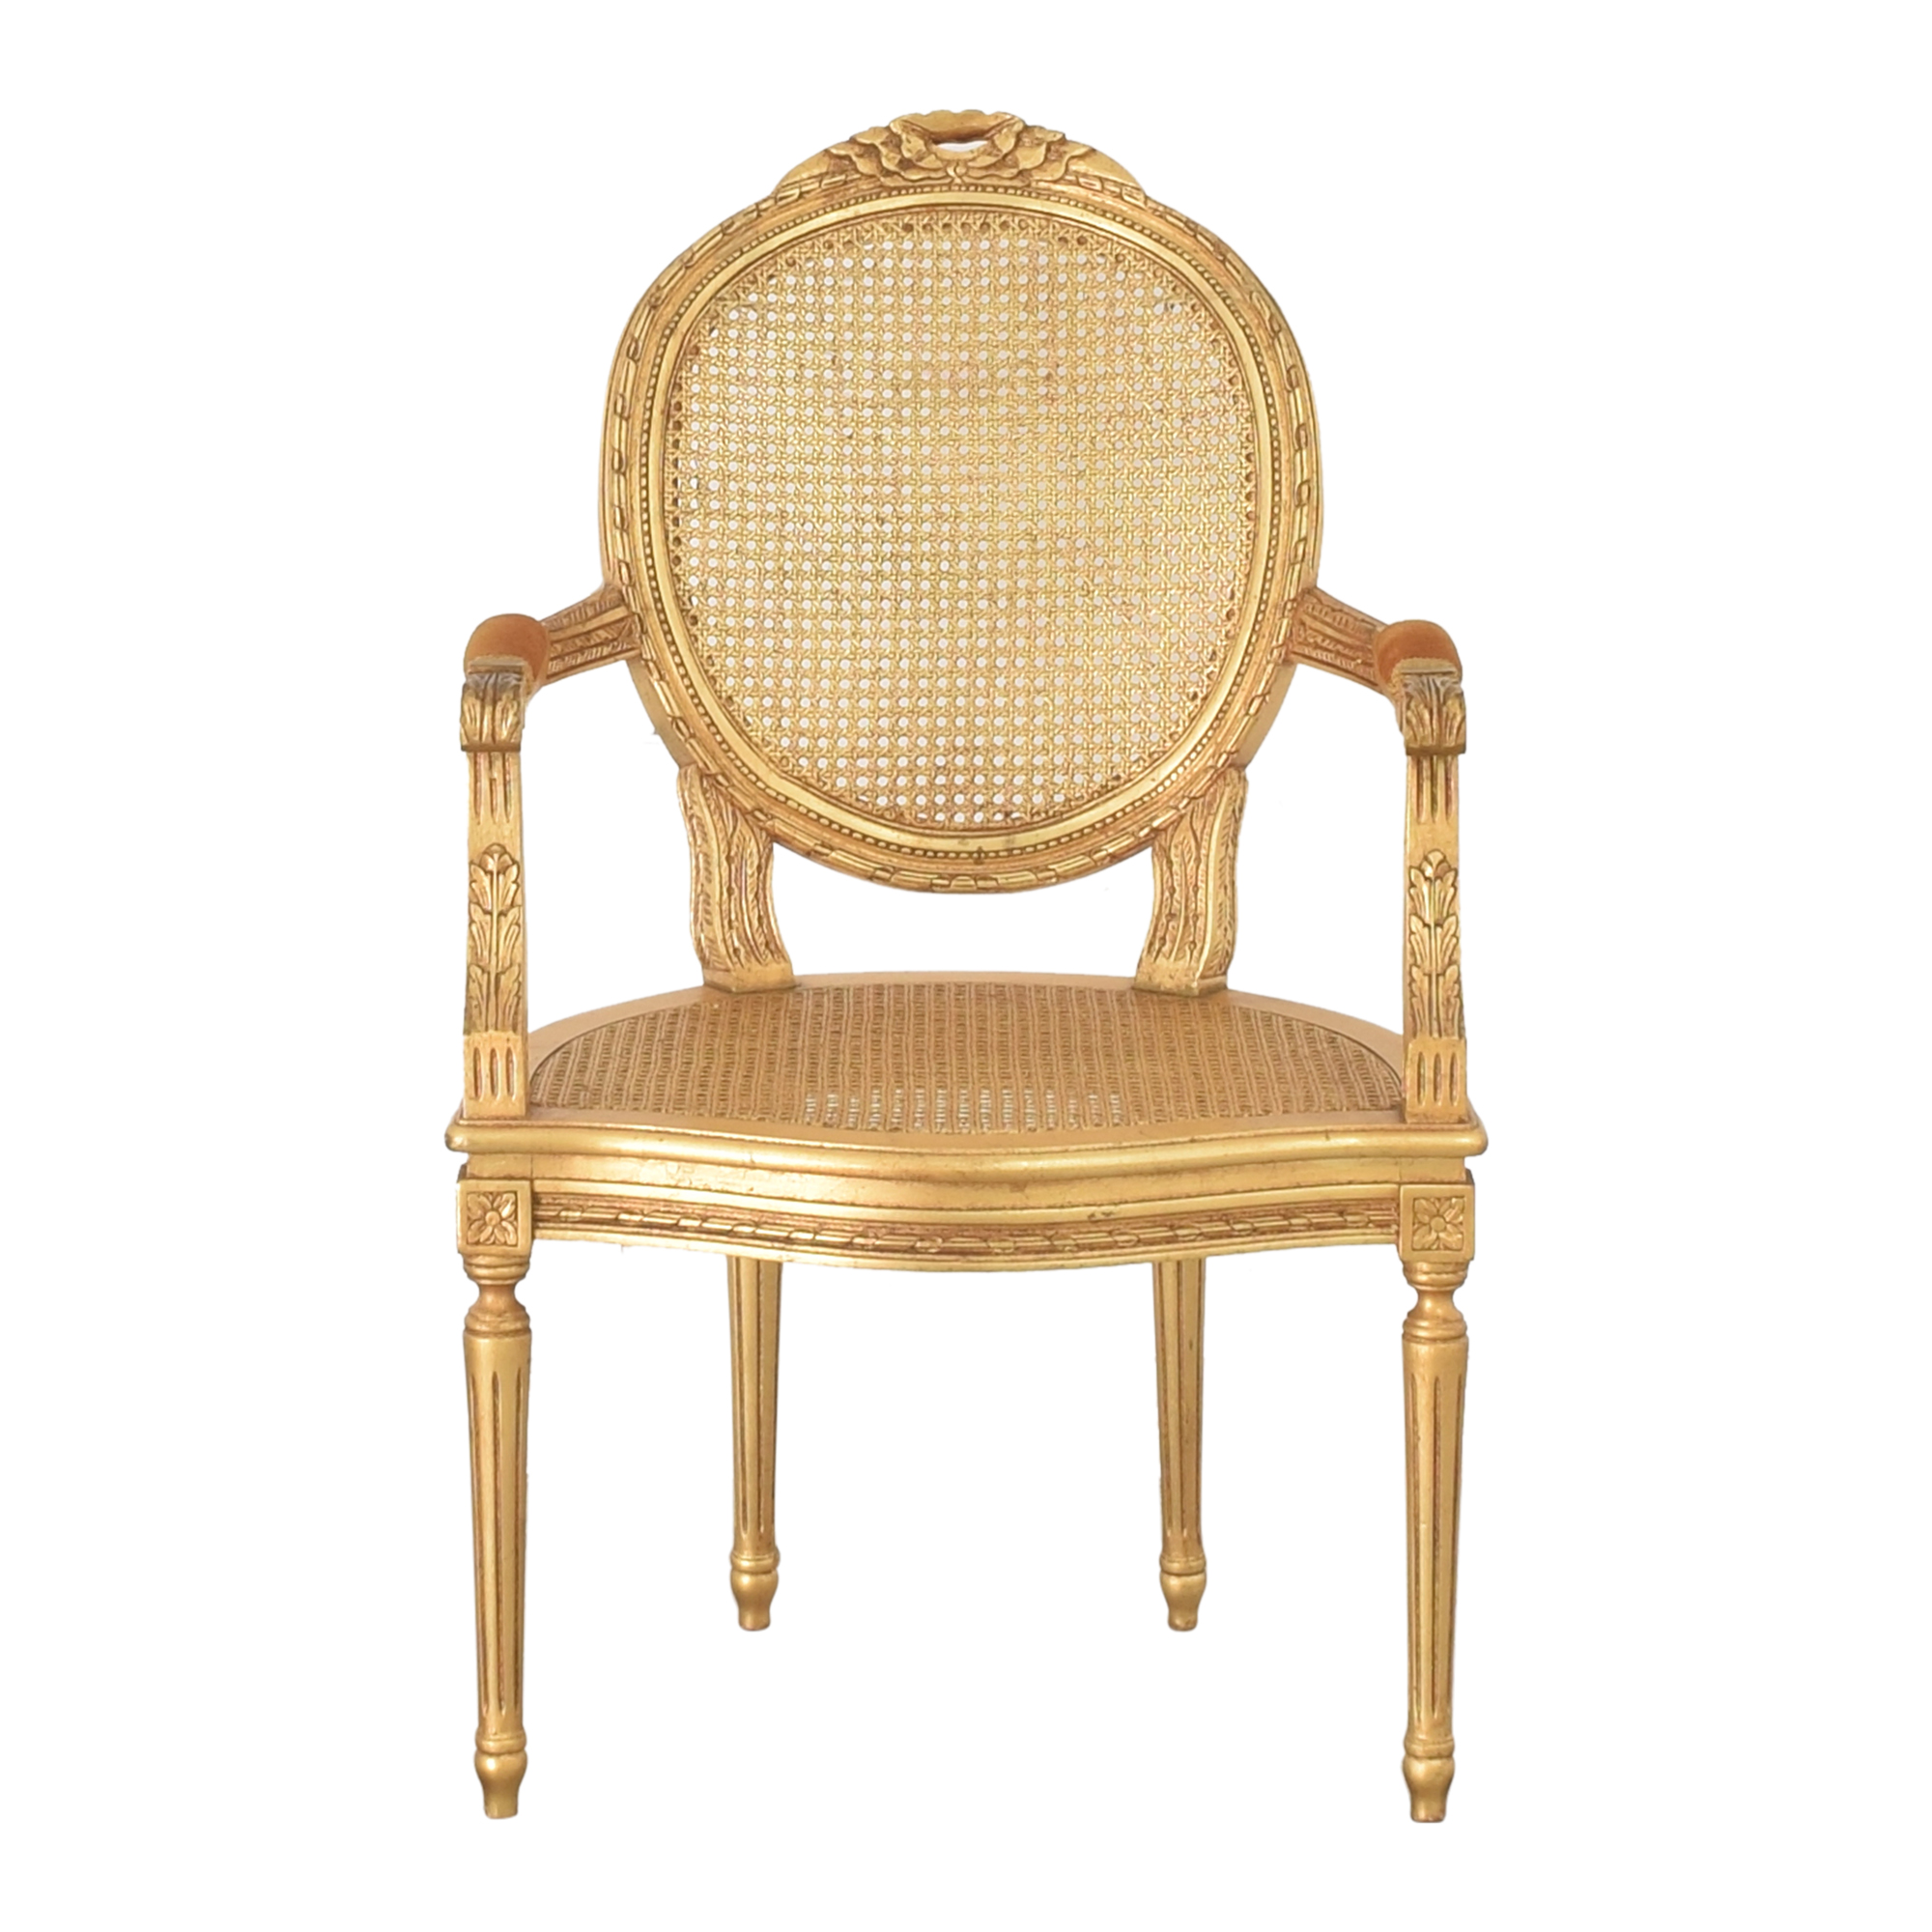 Decorative Crafts Decorative Crafts Louis XVI Fauteuil Armchair second hand